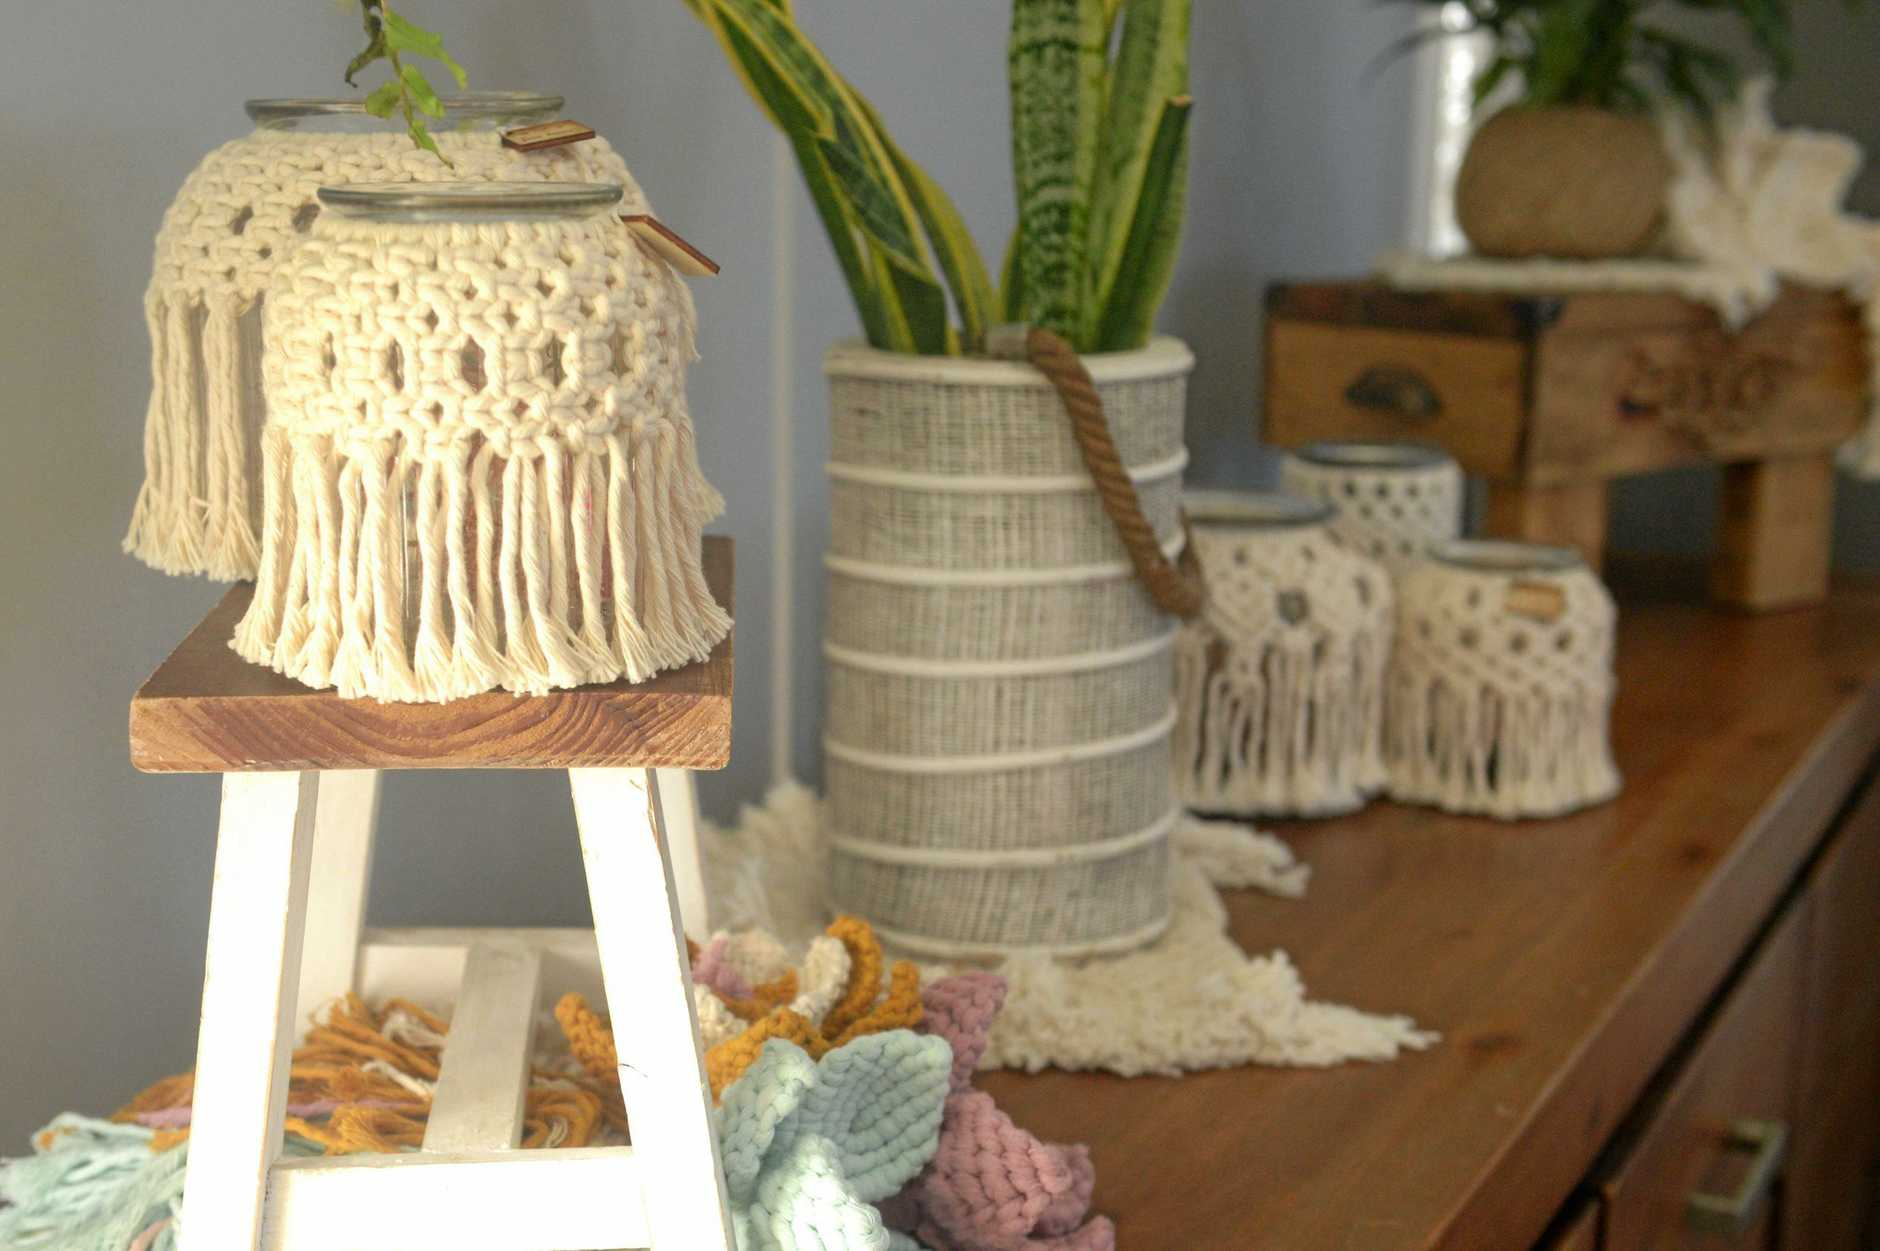 Neutral candle and jar holders with macrame.